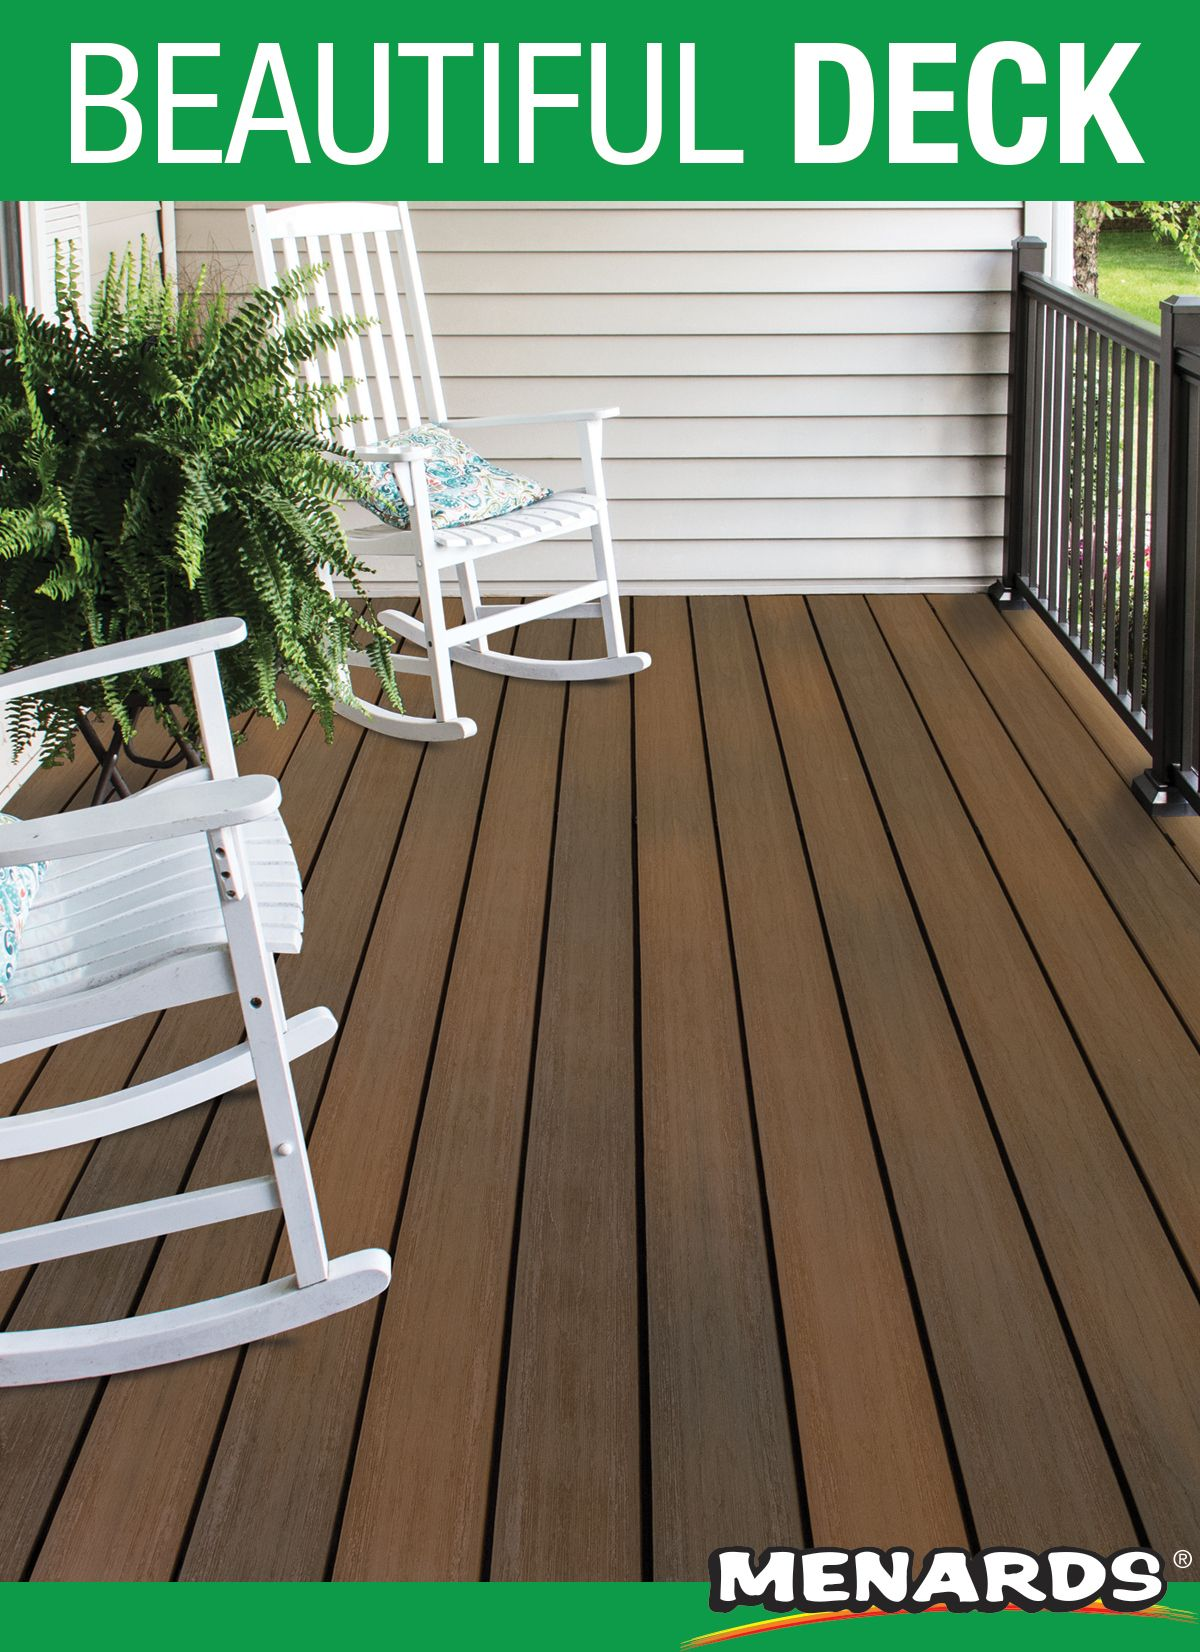 UltraDeck Inspire has dramatic color variations resulting